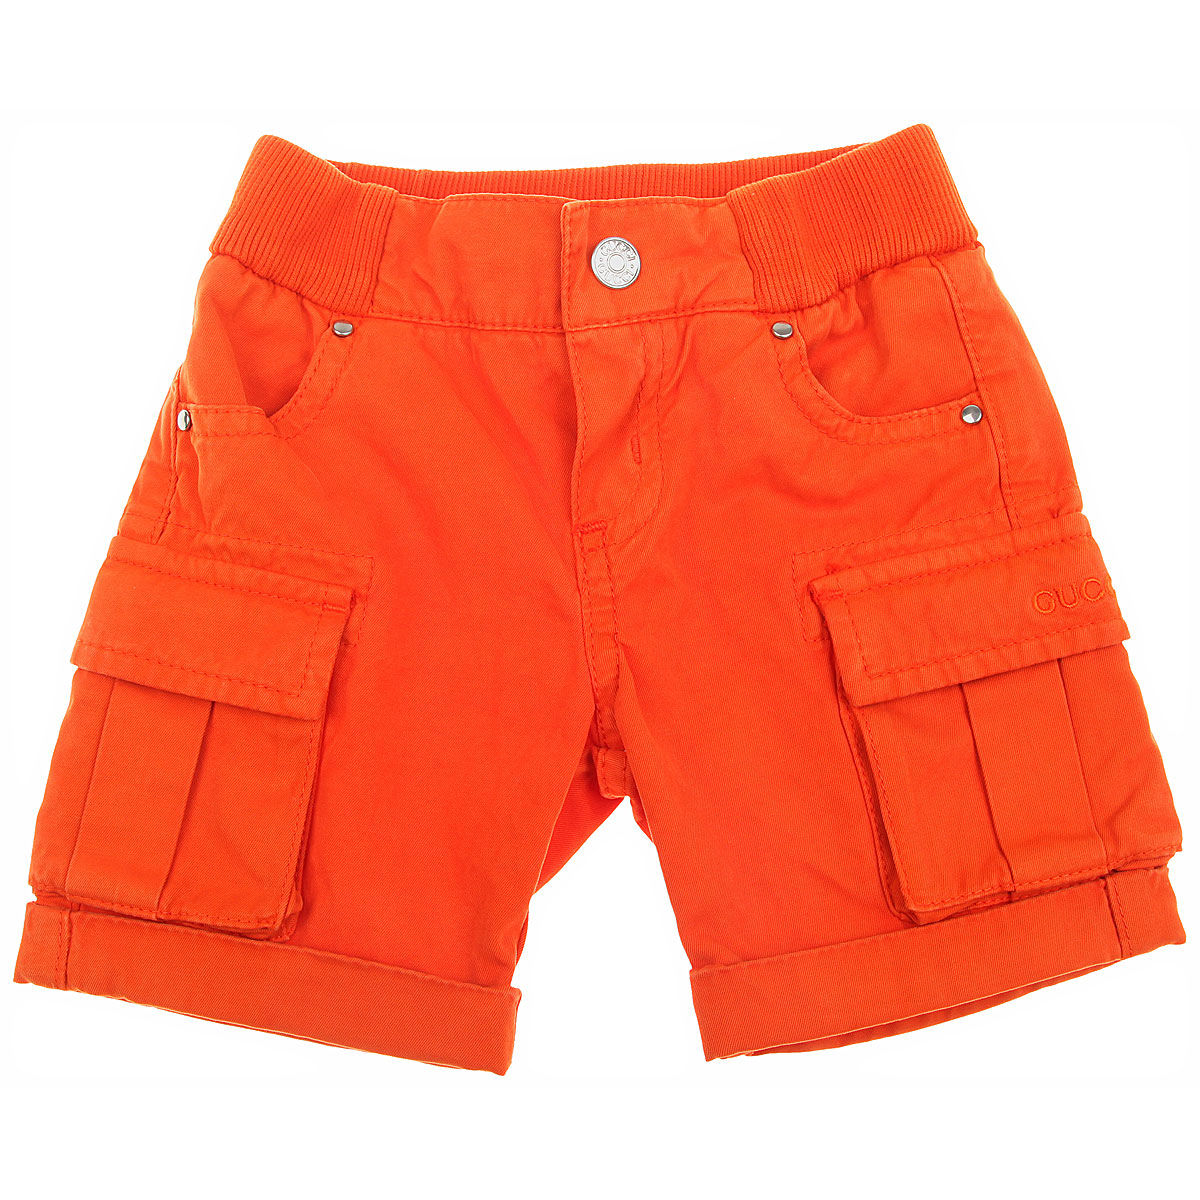 Gucci Baby Shorts for Boys On Sale in Outlet Orange DK - GOOFASH - Mens SHORTS